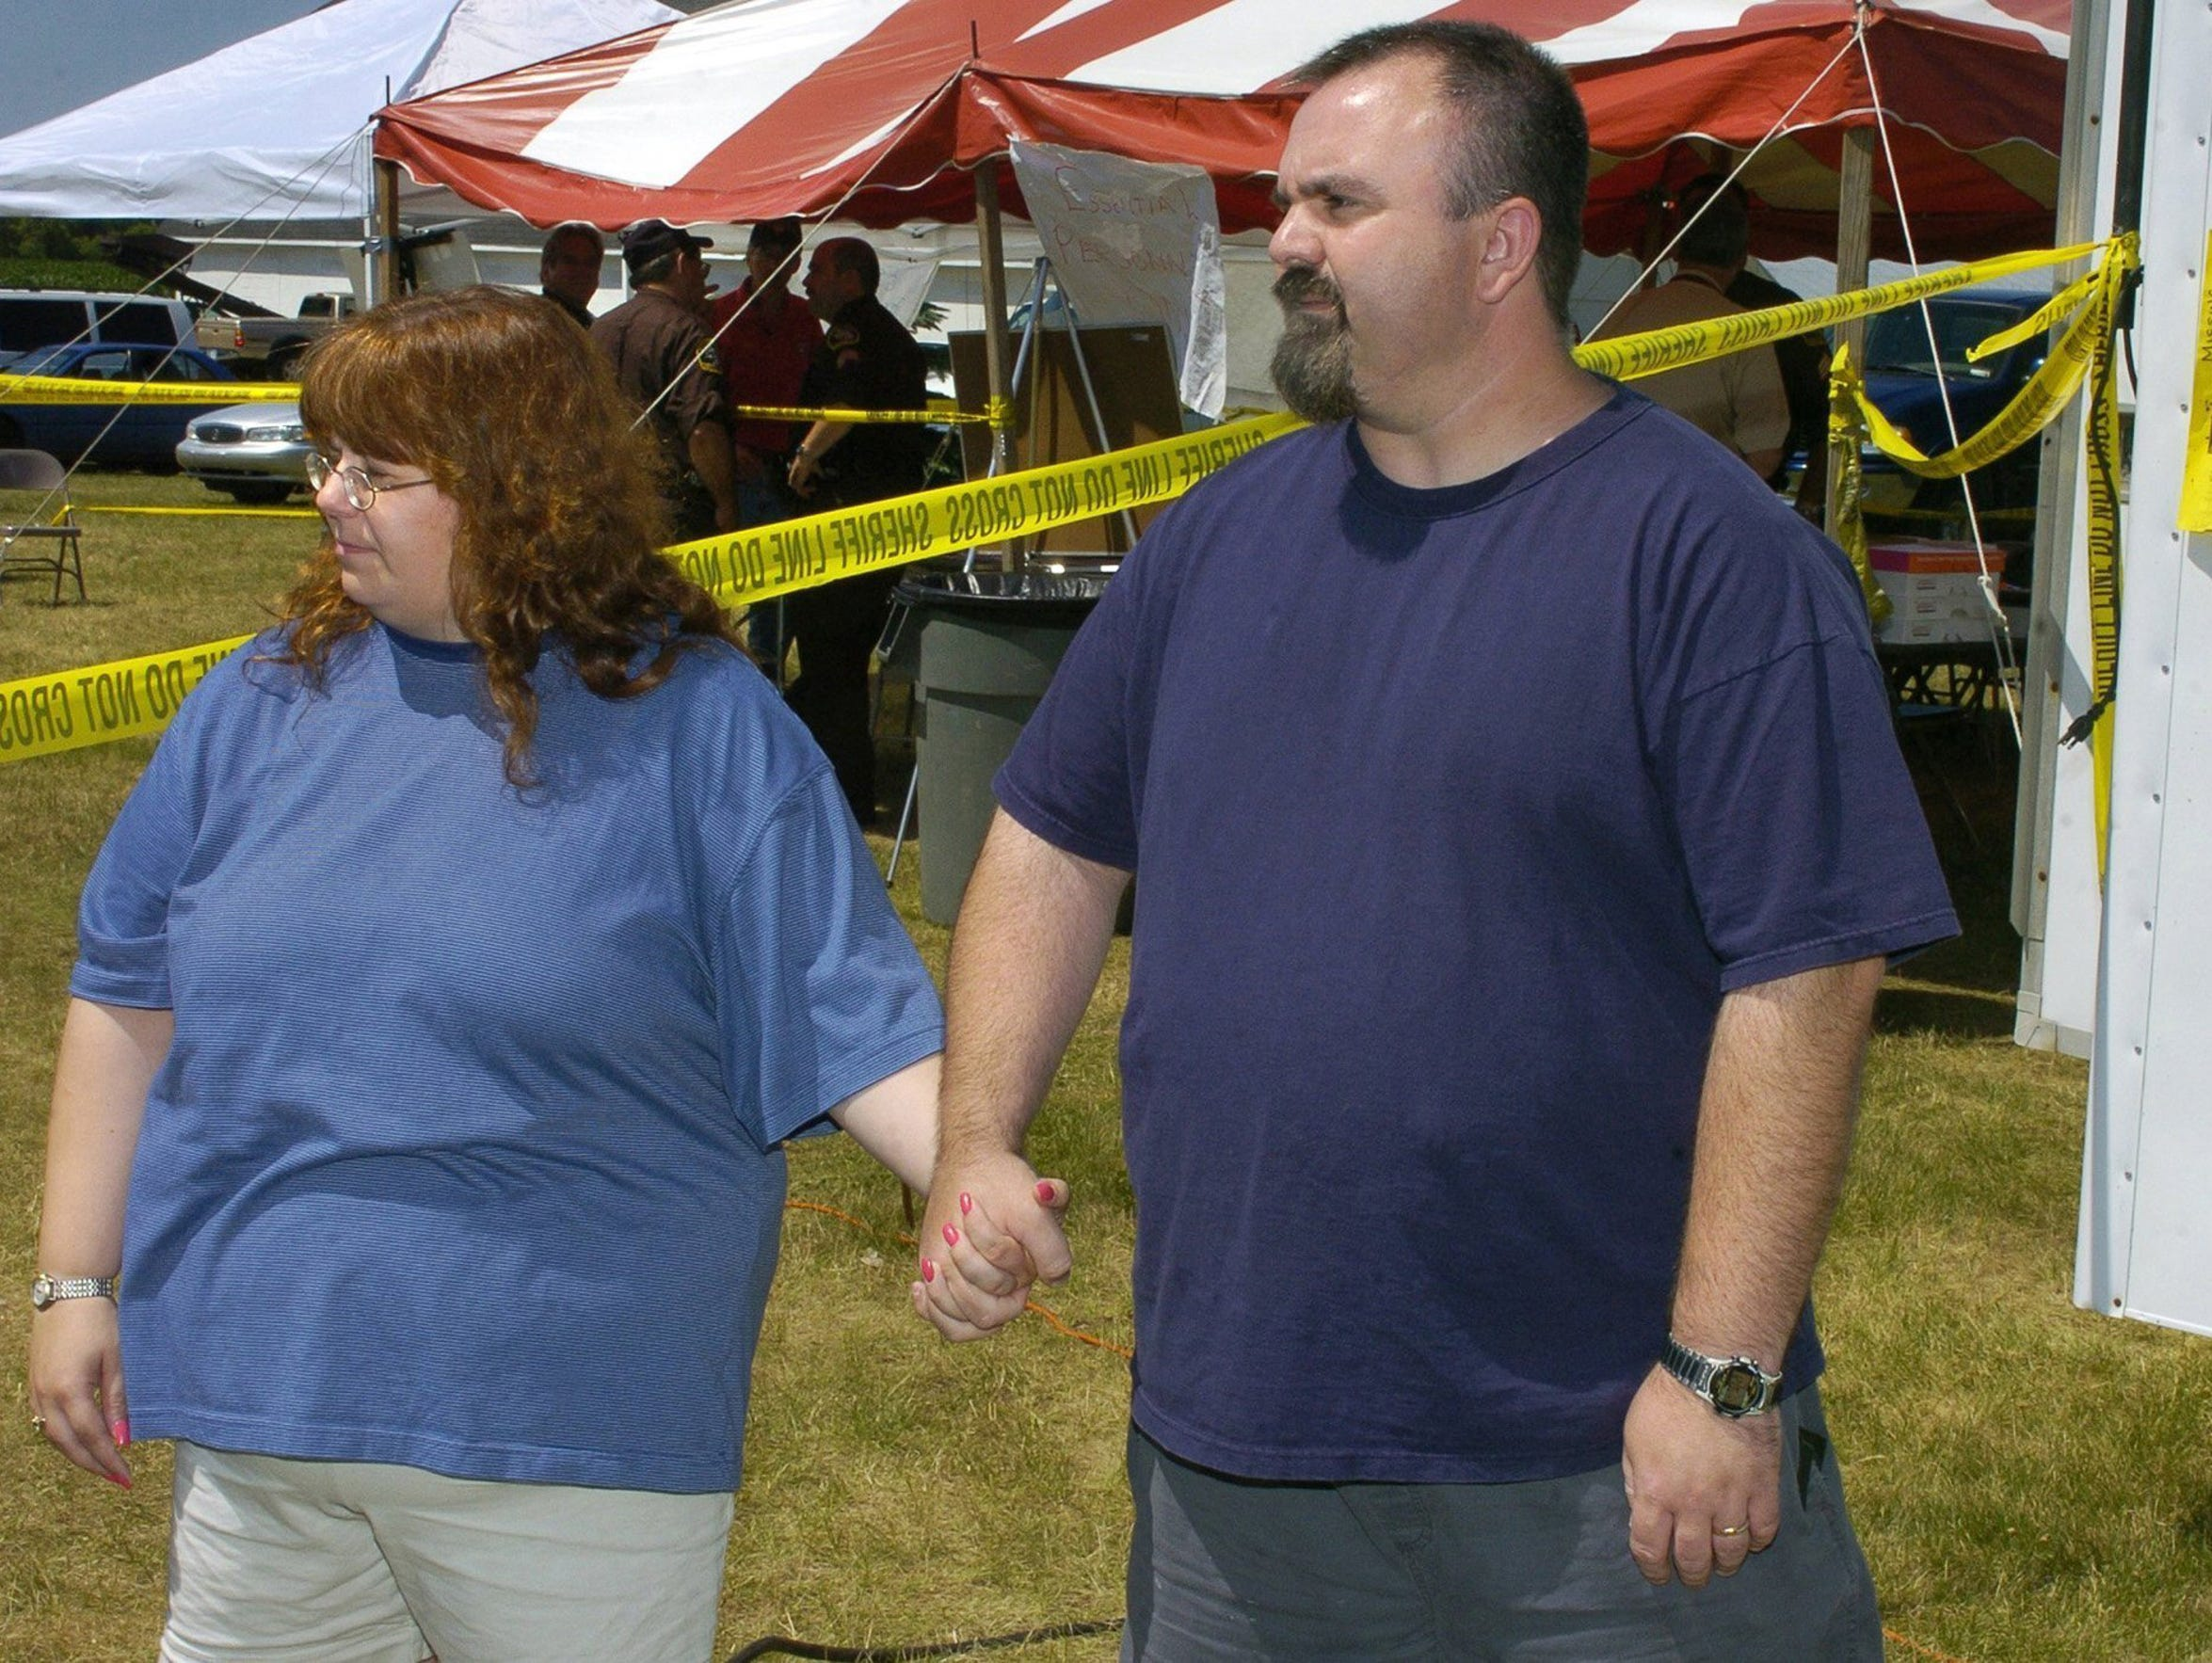 Lisa and Tim Holland are serving prison sentences for